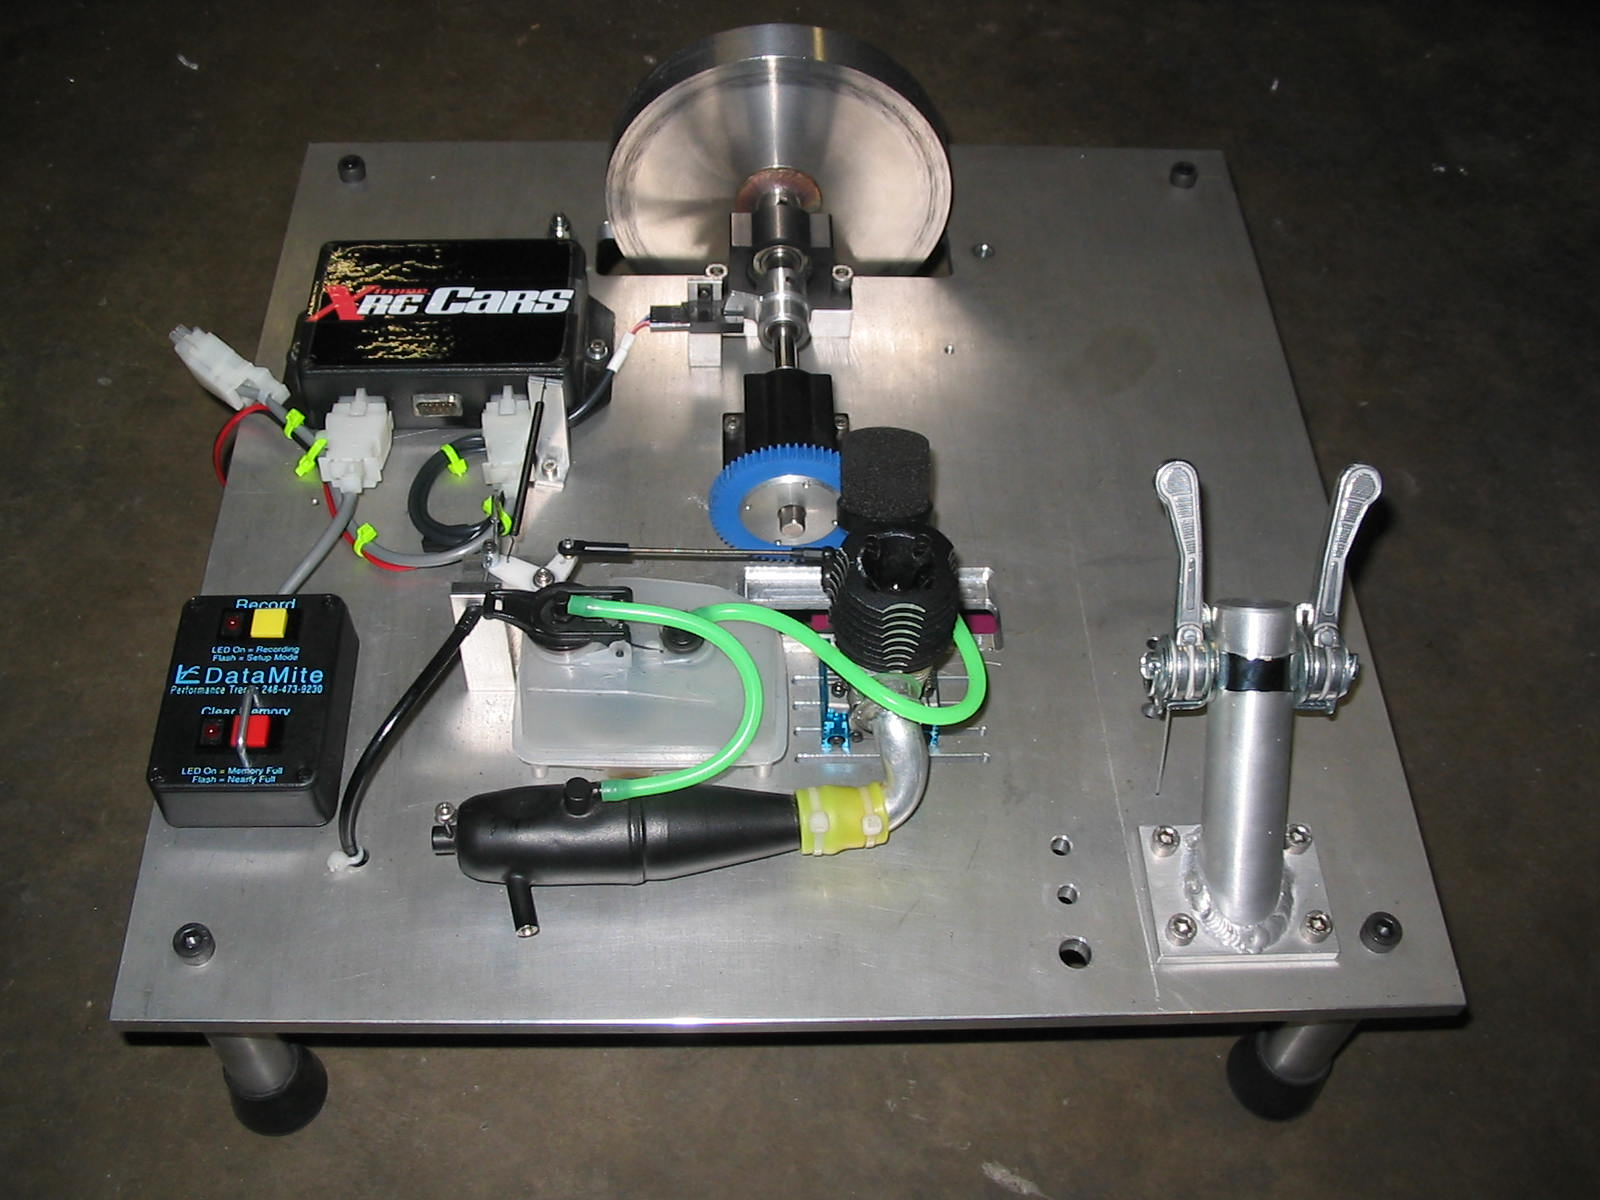 How to measure an engine 39 s torque r c tech forums for Measuring electric motor torque